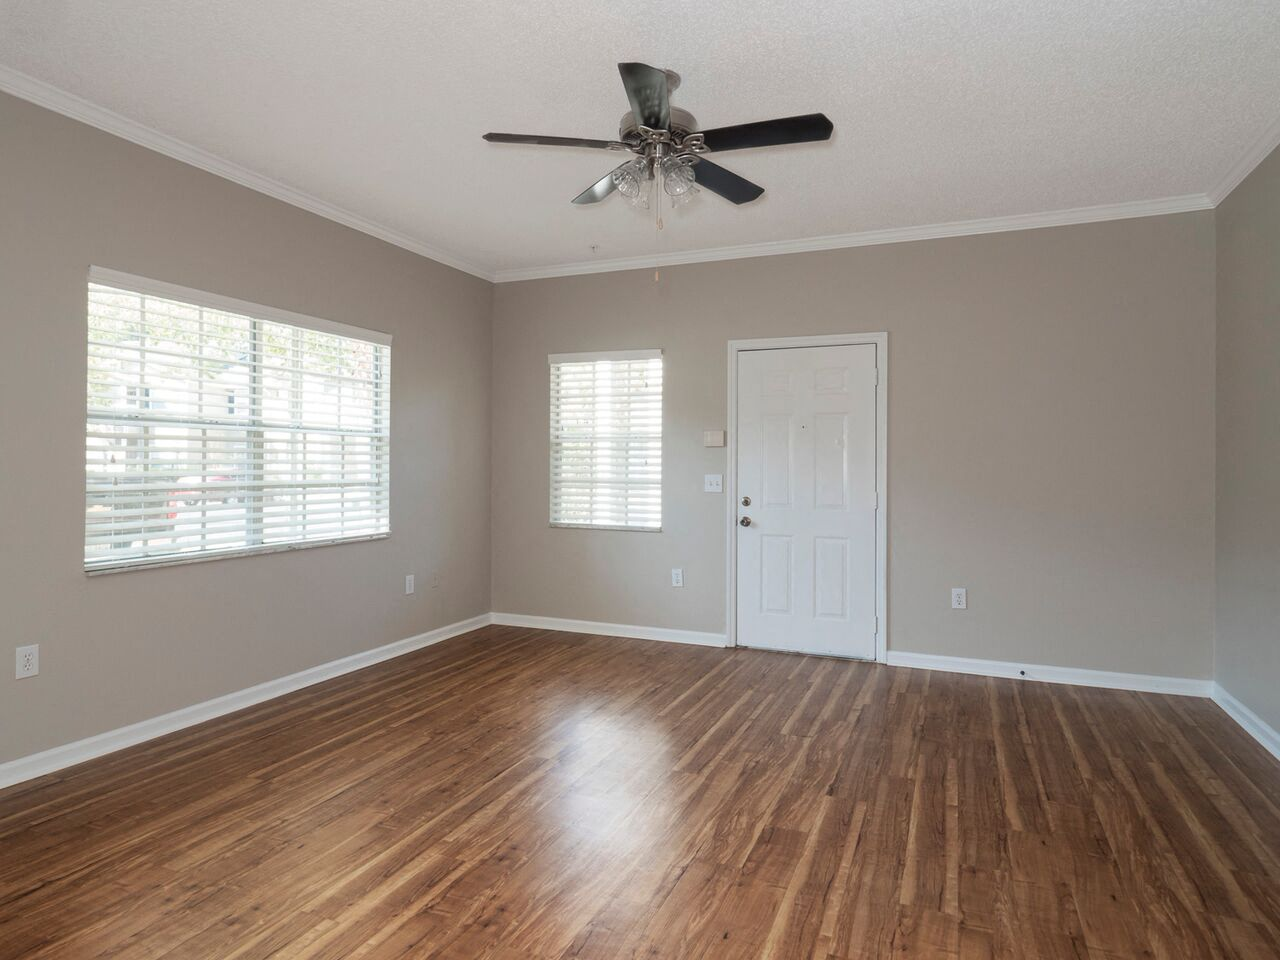 Hardwood Floors in Select Units